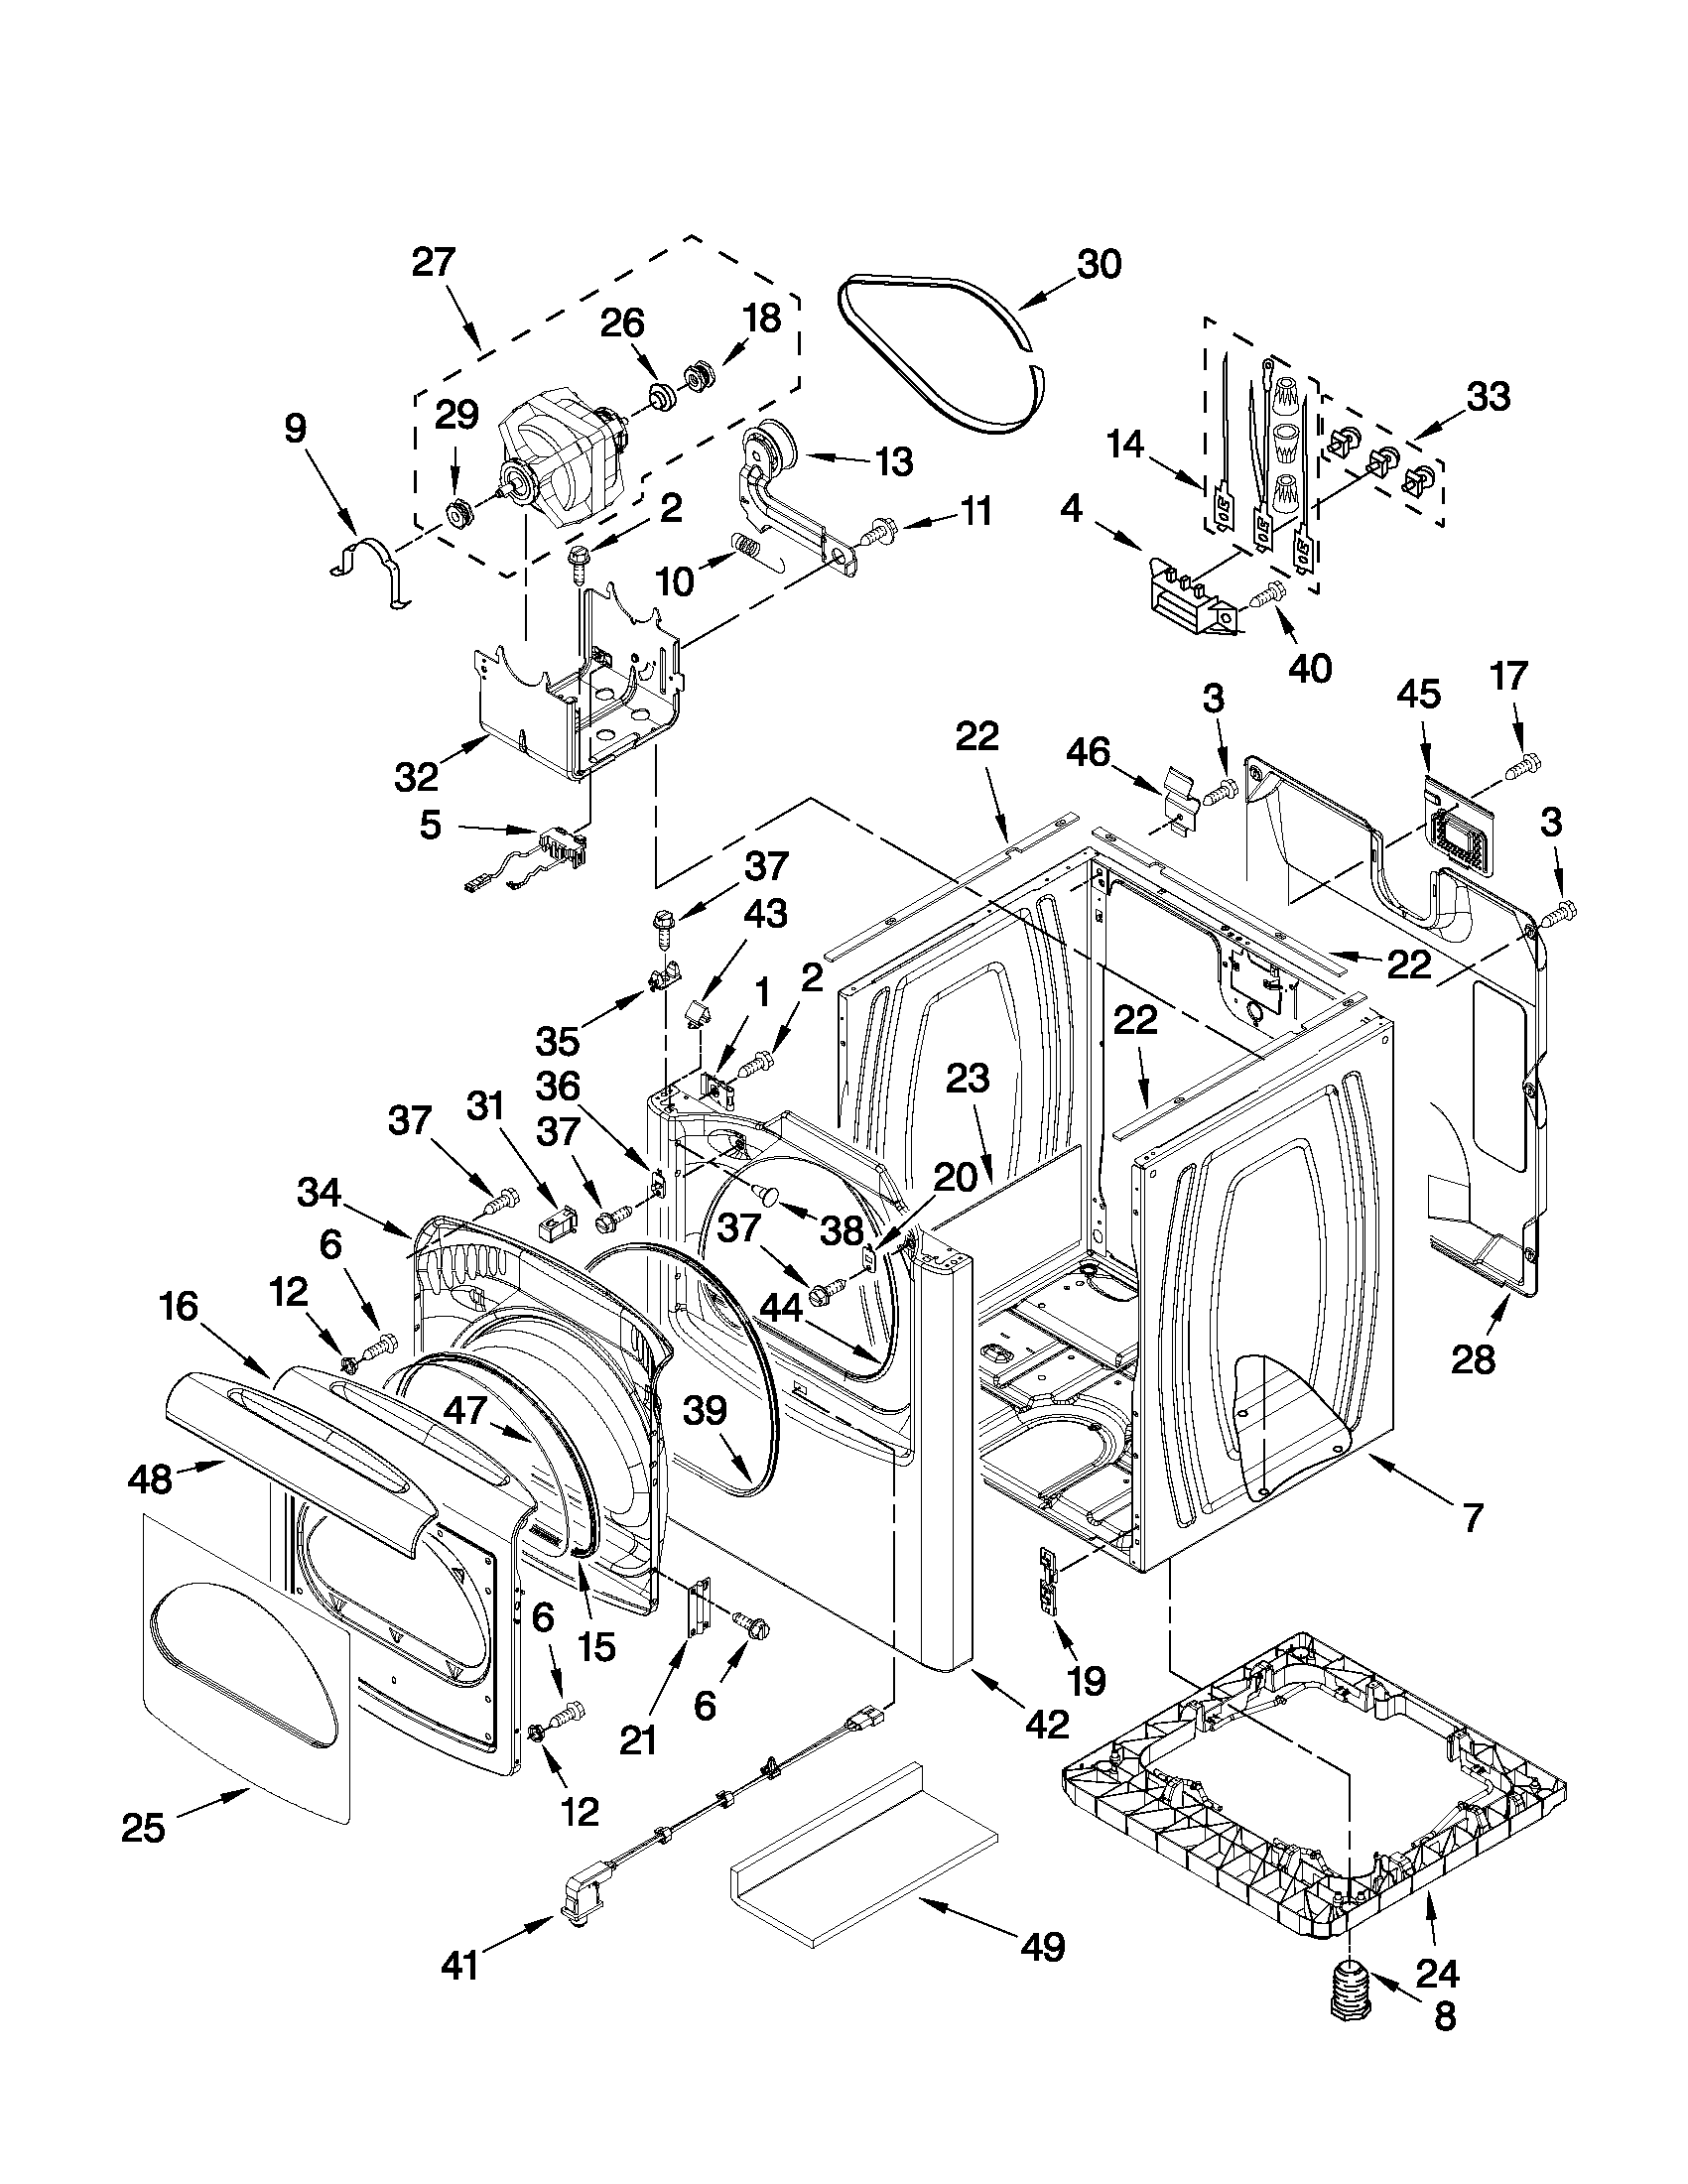 hight resolution of 95 pontiac bonneville wiring diagram 8 10 kenmo lp de u202295 pontiac bonneville engine diagram